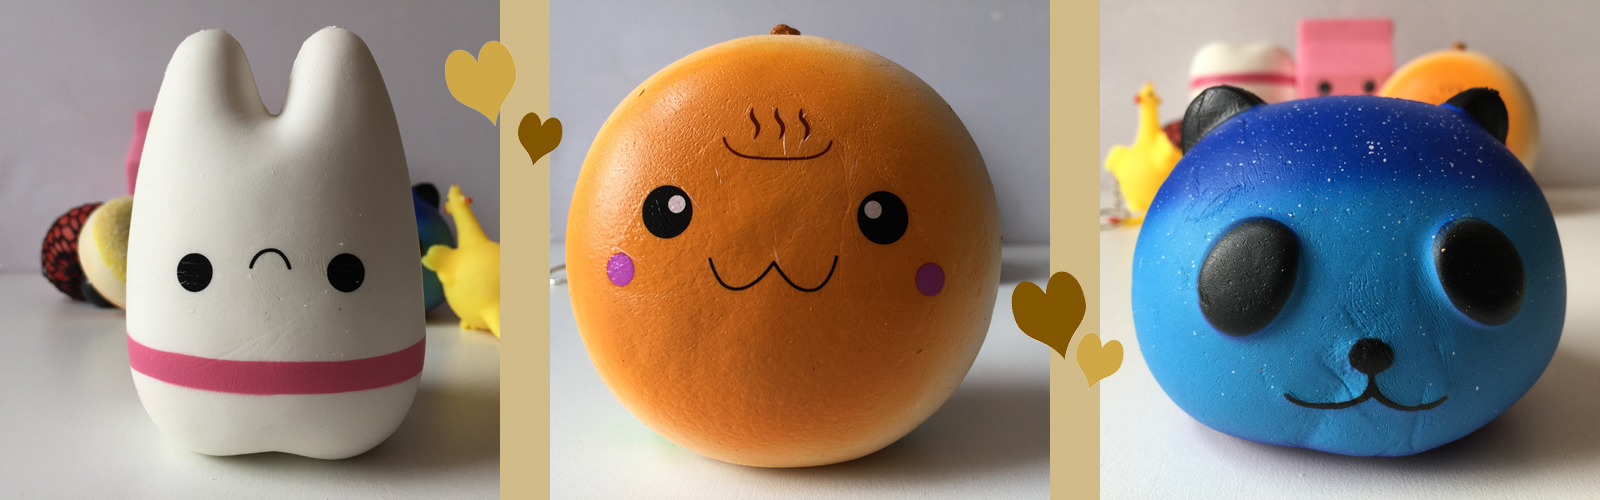 Squishies van AliExpress #blog47